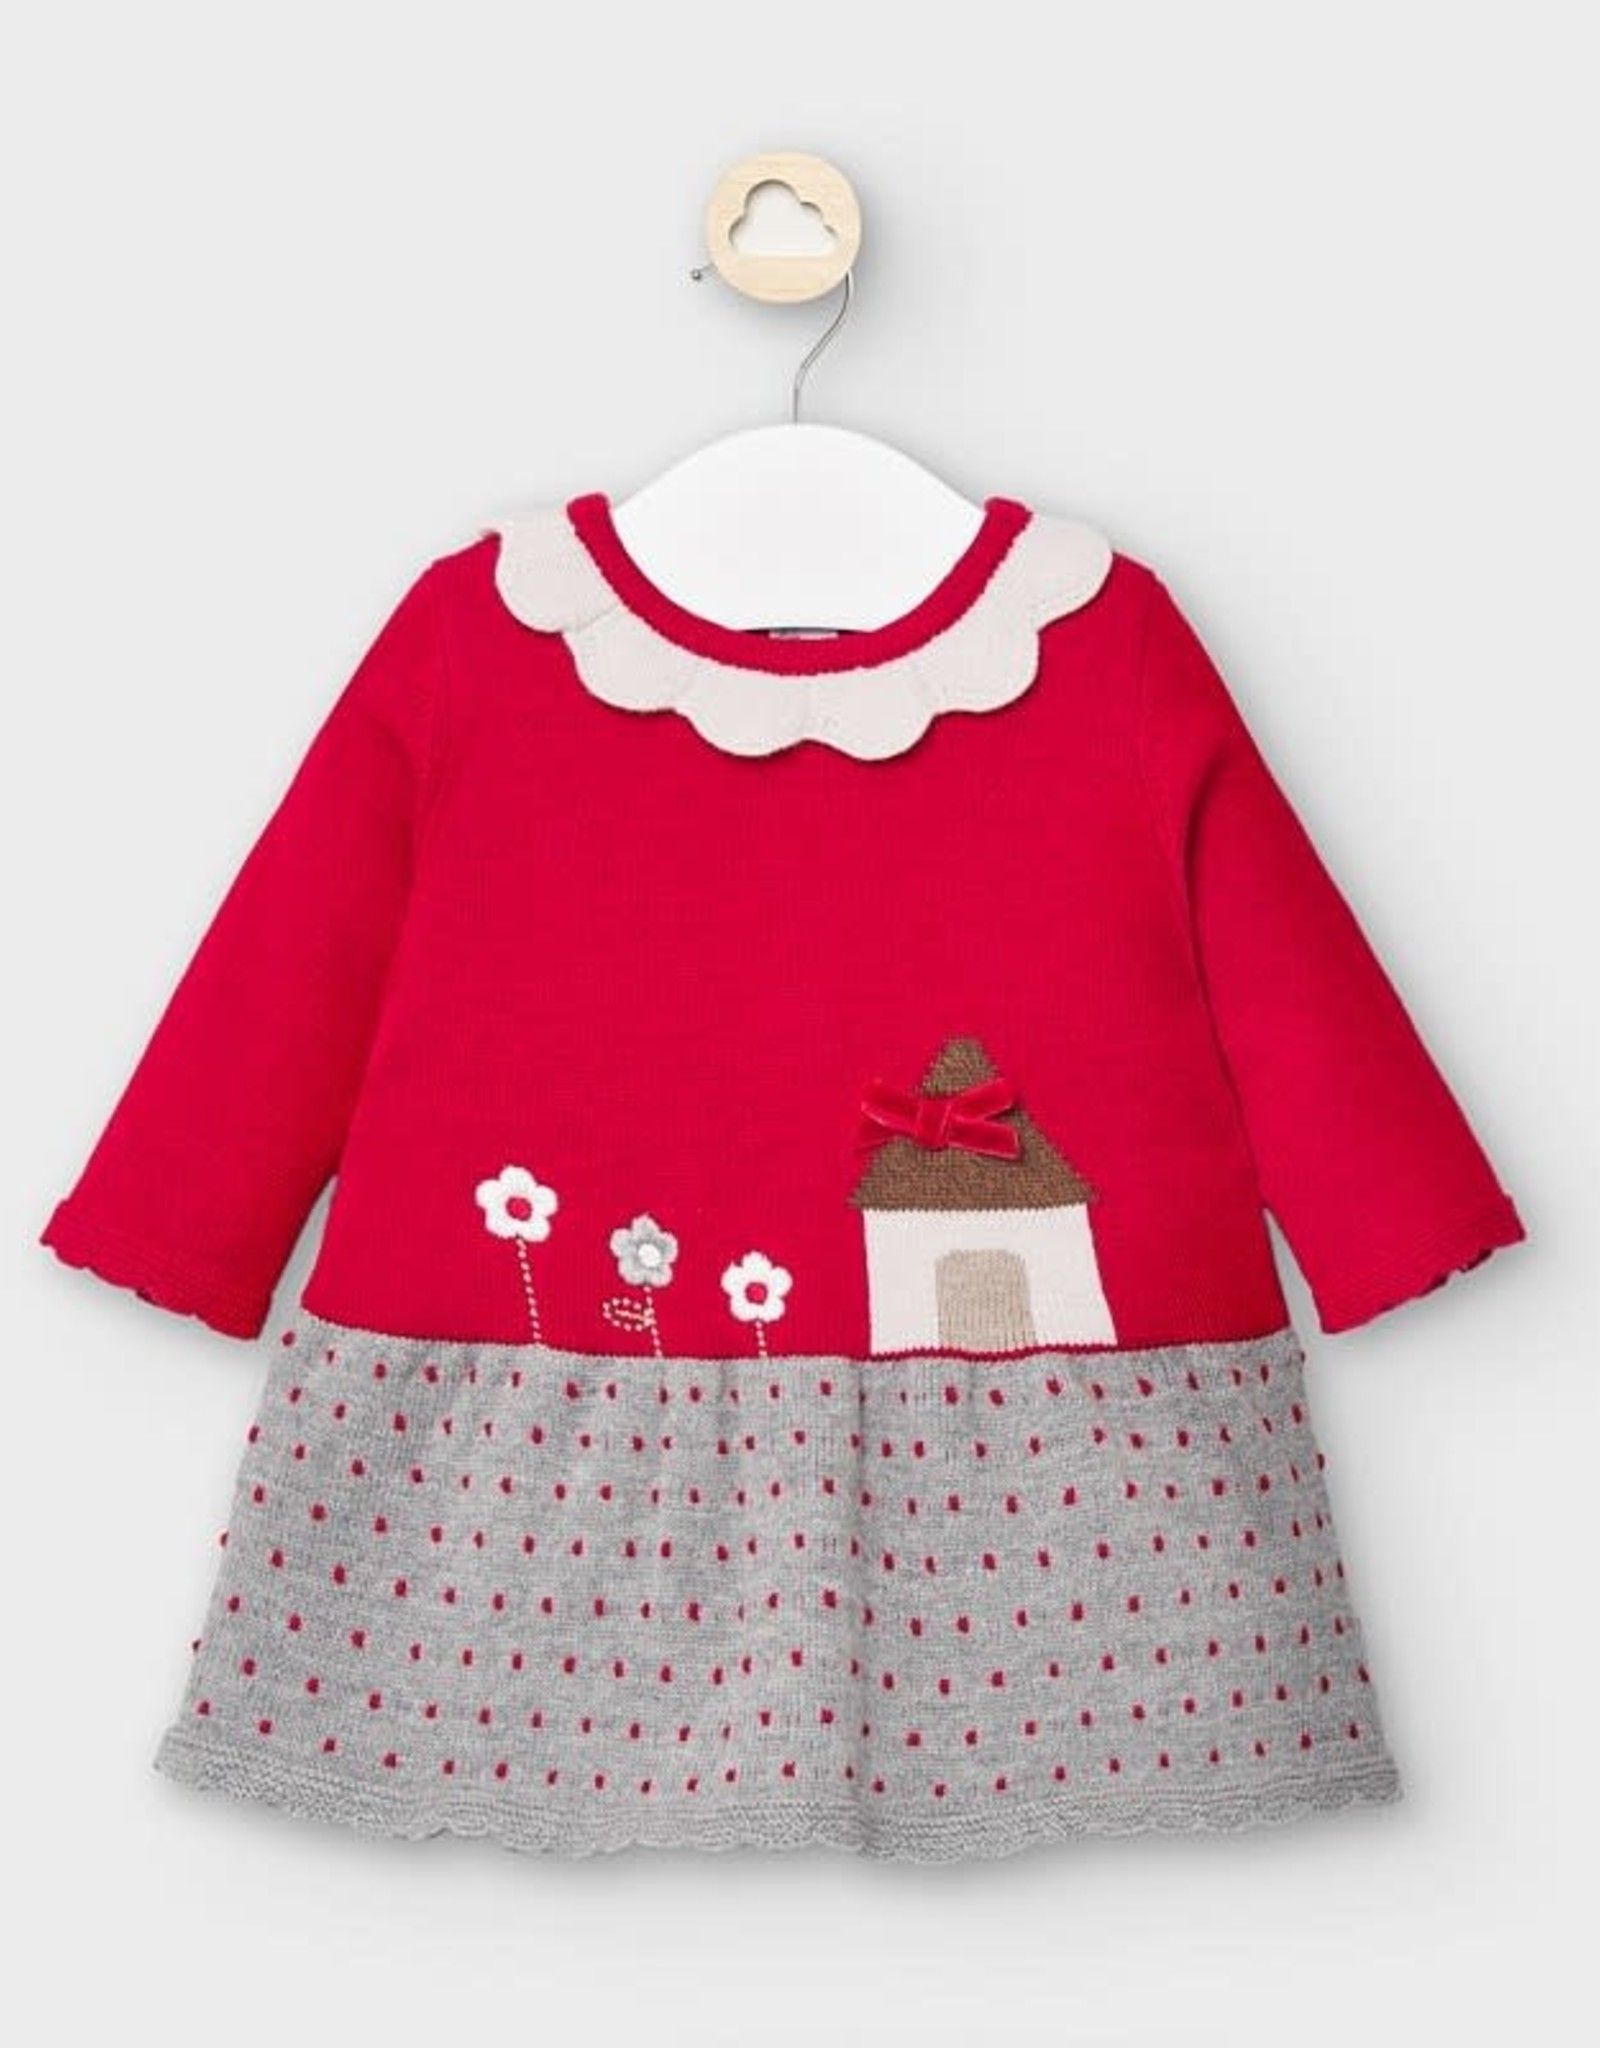 Mayoral Knit Dress - House - Red/grey